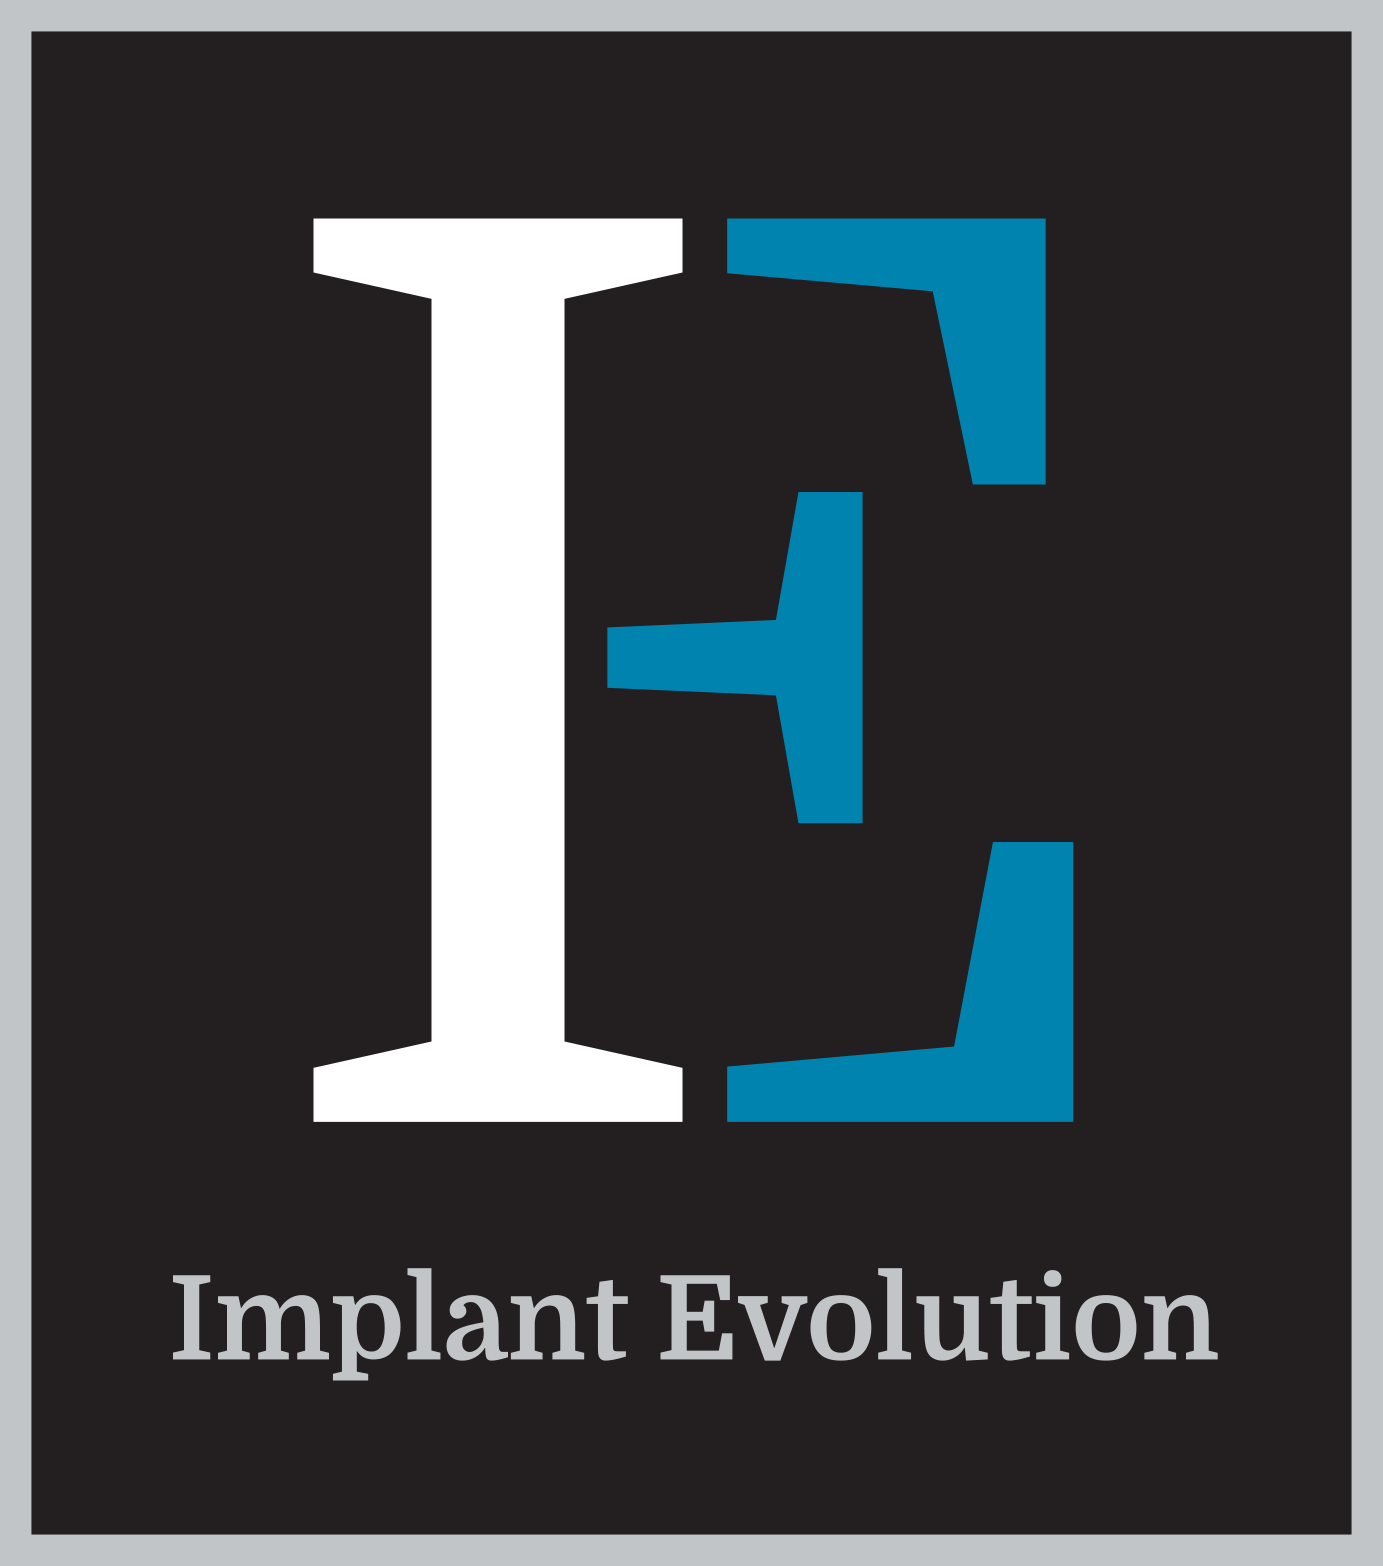 Implant Evolution